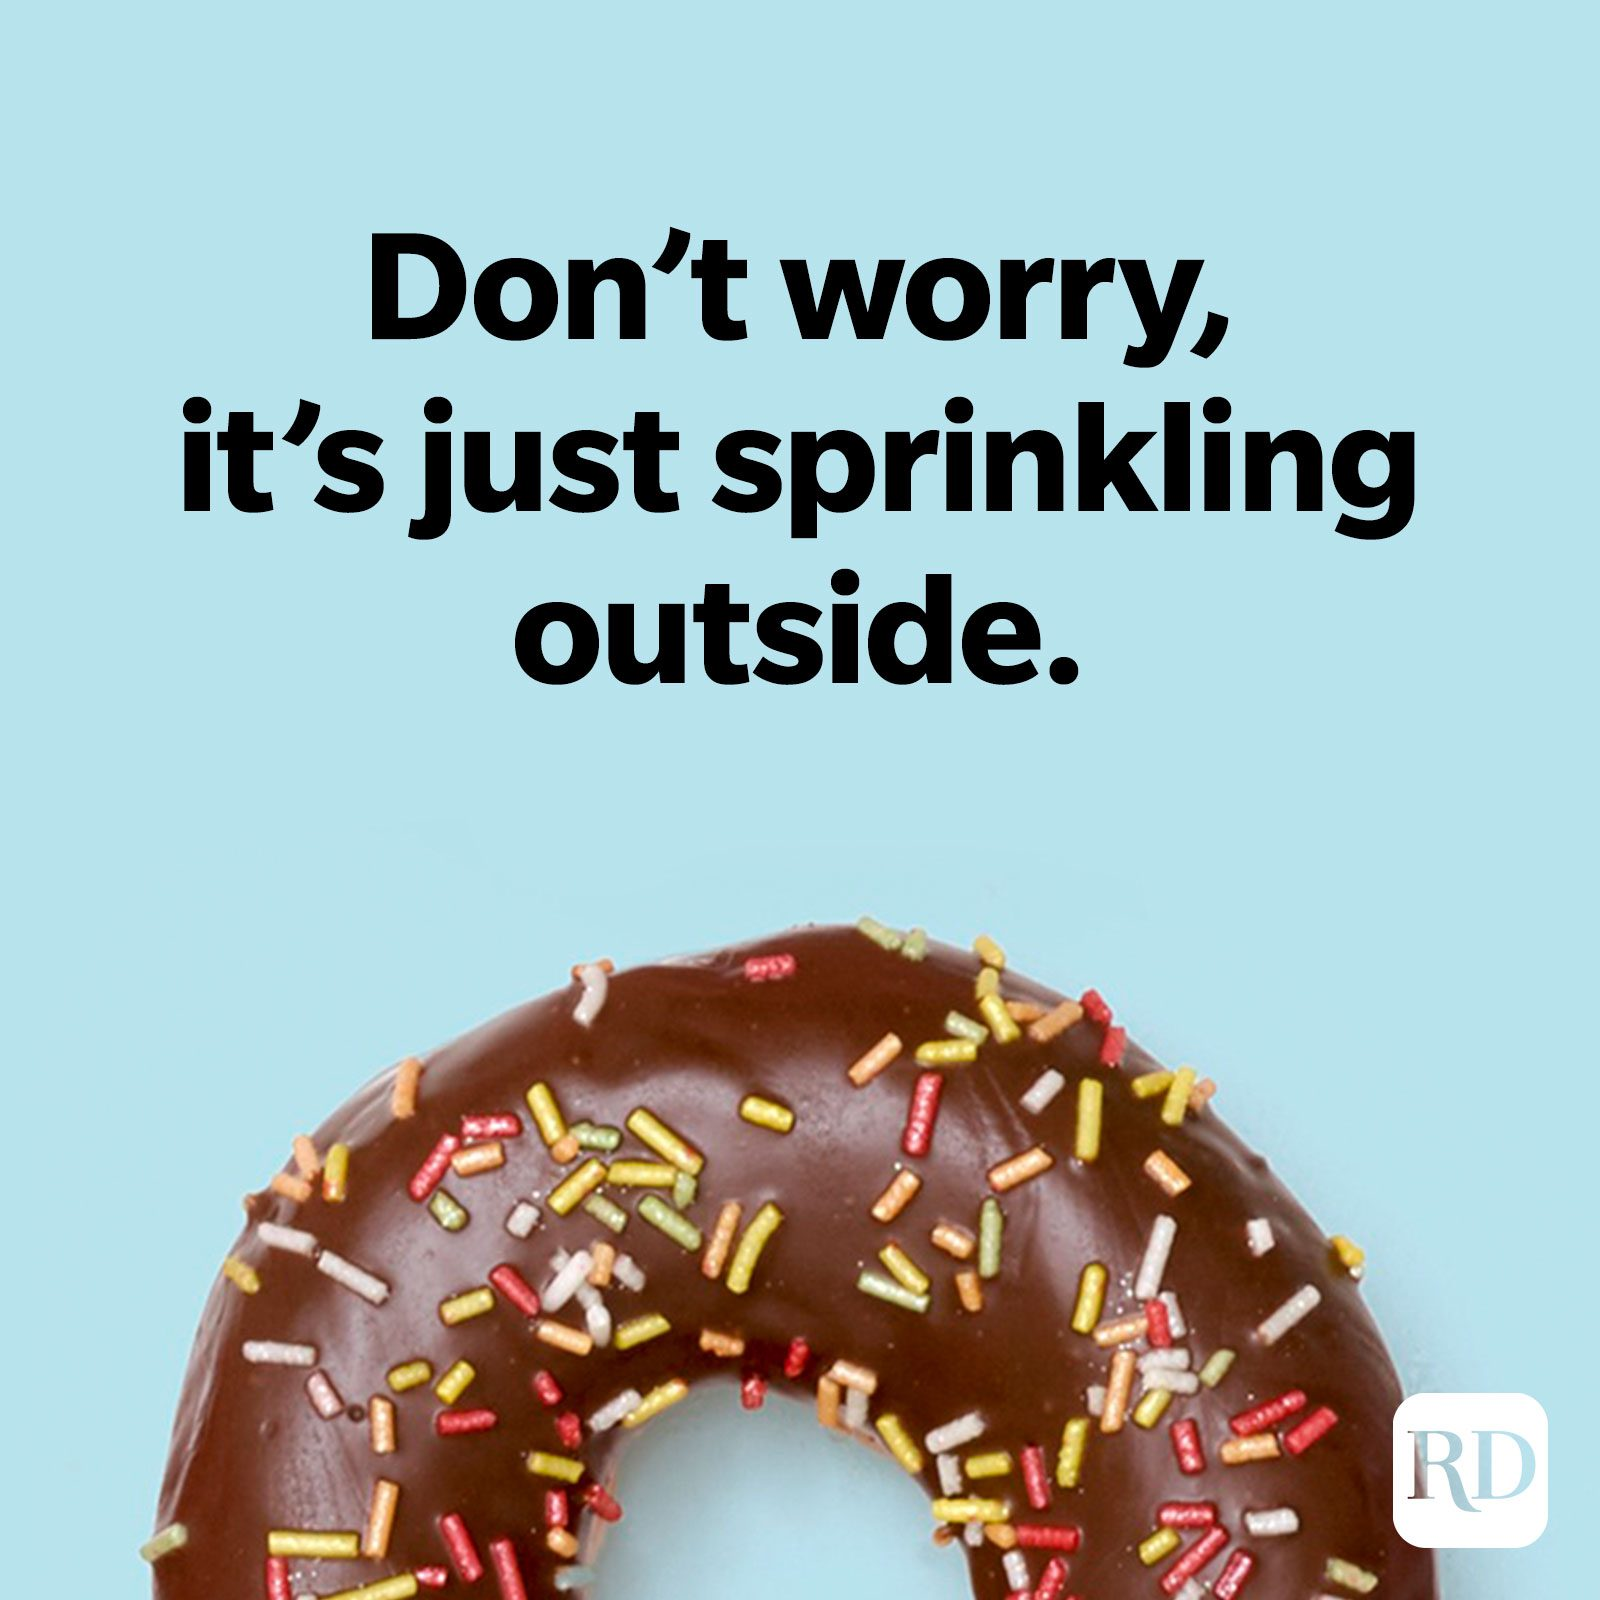 Don't worry, it's just sprinkling outside.